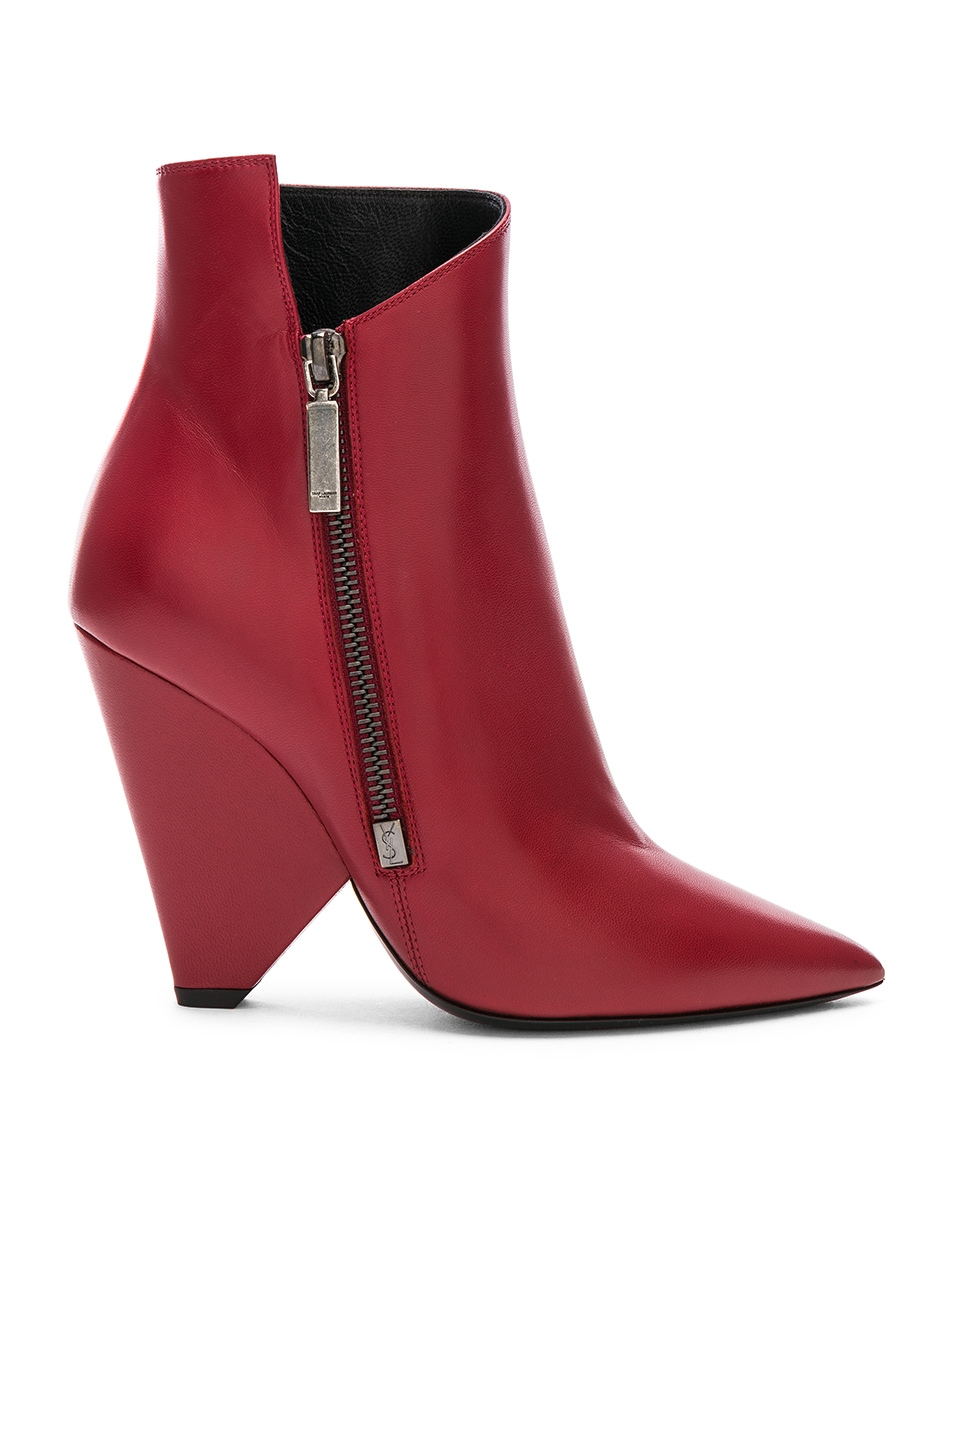 989688ed6df Saint Laurent Niki Ankle Boots in Hot Red | FWRD